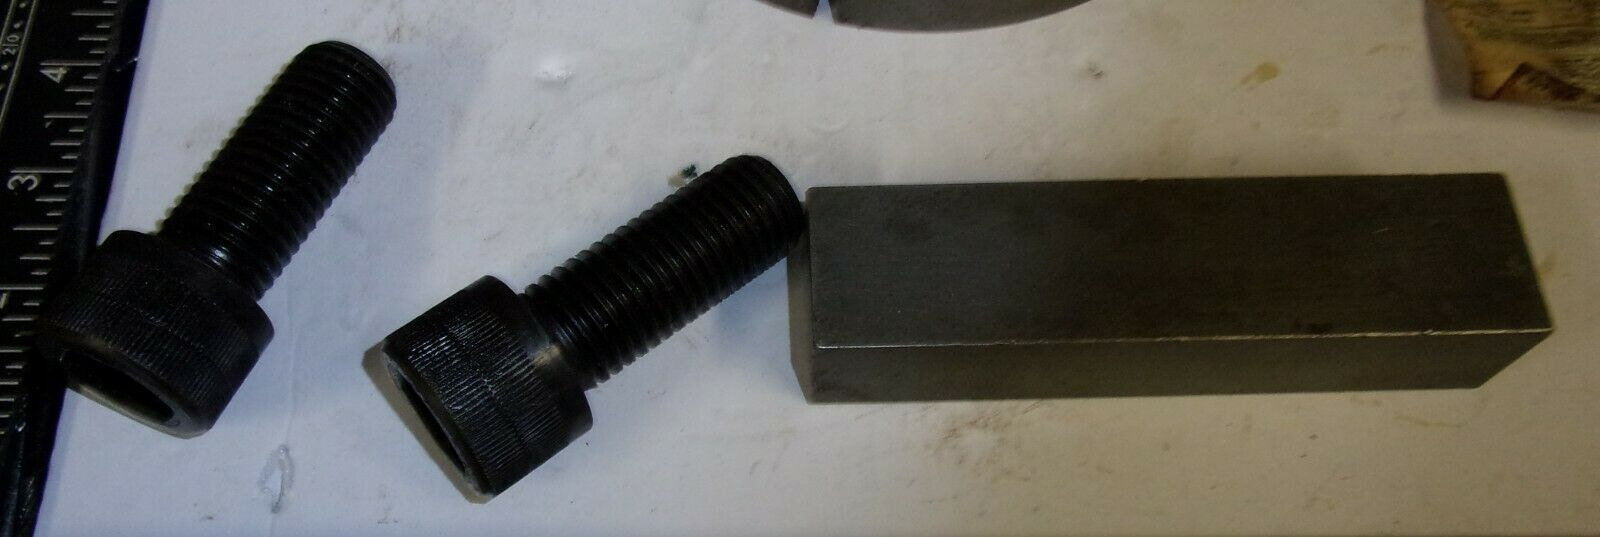 """ELECTRON SDS 1 15//16/"""" TAPPER LOCK BUSHING WITH 1//2/"""" KEY AND BOLTS"""